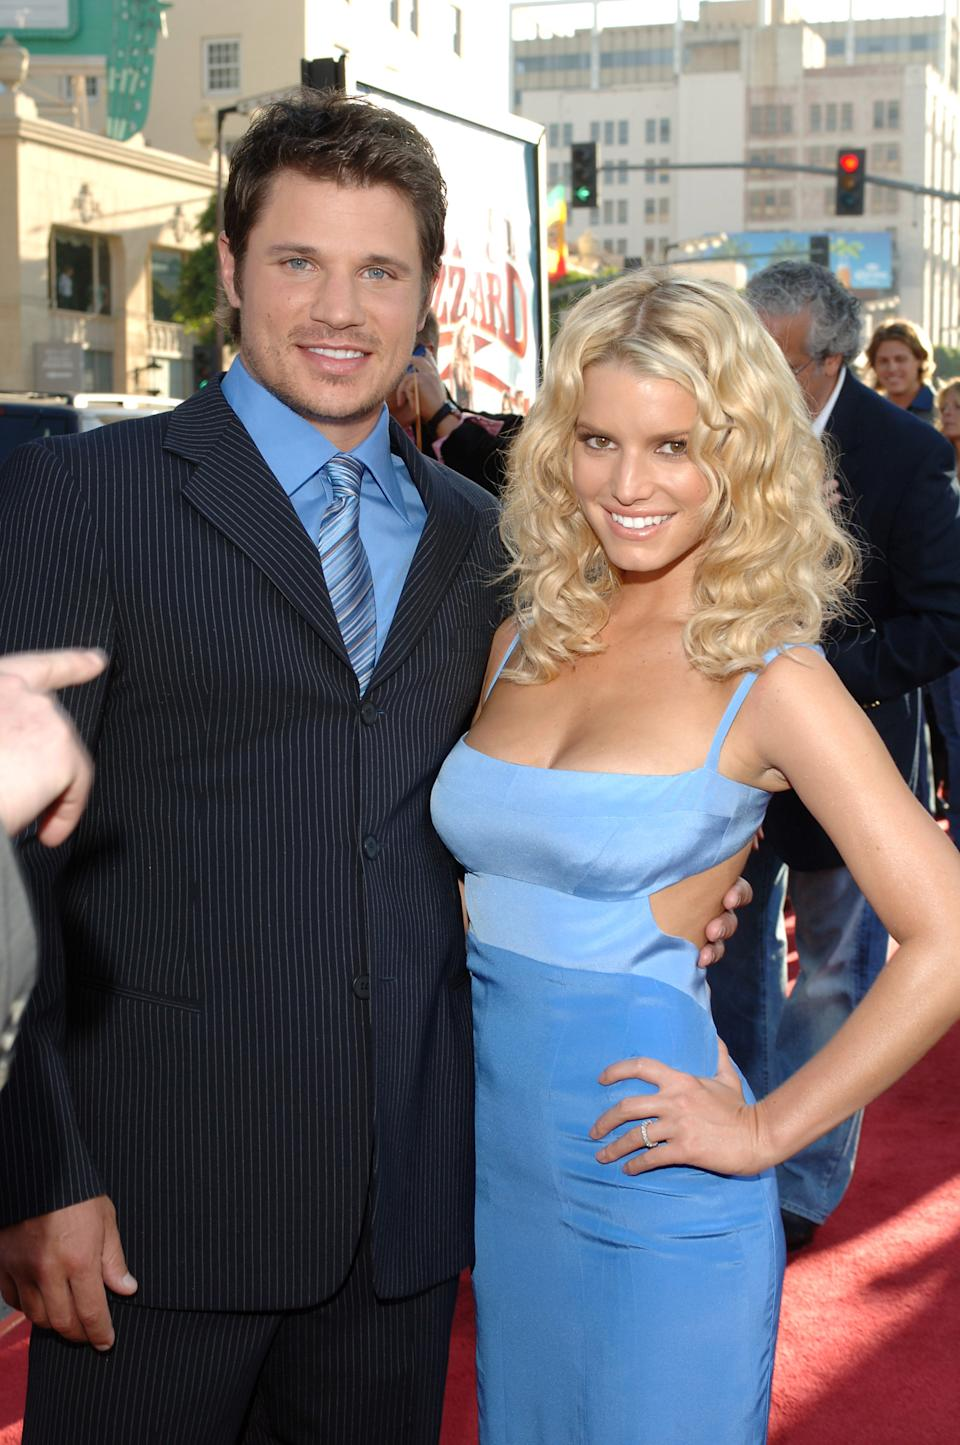 """Nick Lachey and Jessica Simpson during """"The Dukes of Hazzard"""" Los Angeles Premiere - Red Carpet at Grauman's Chinese Theatre in Los Angeles, California, United States. (Photo by L. Cohen/WireImage)"""